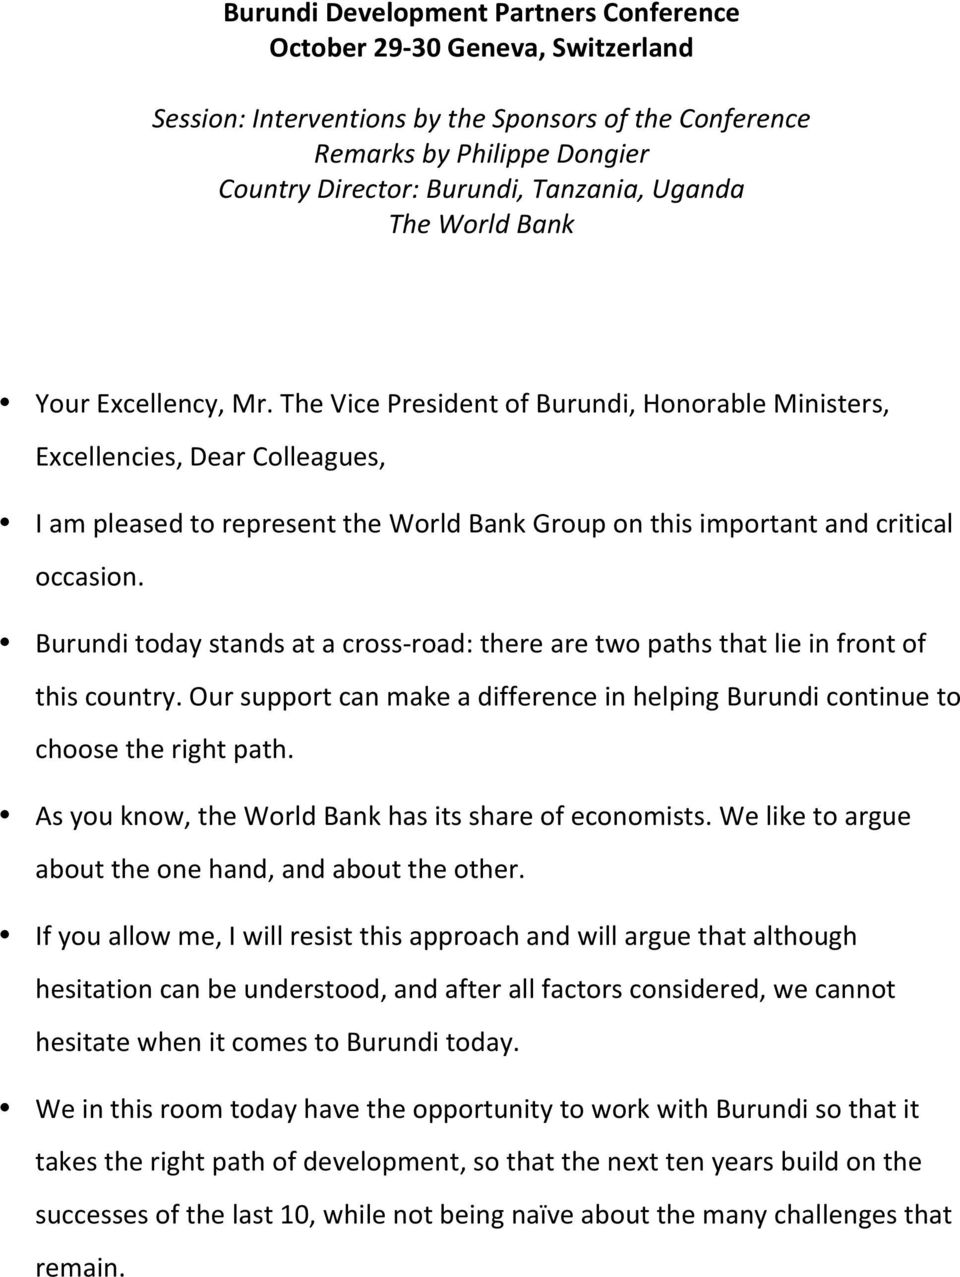 The Vice President of Burundi, Honorable Ministers, Excellencies, Dear Colleagues, I am pleased to represent the World Bank Group on this important and critical occasion.